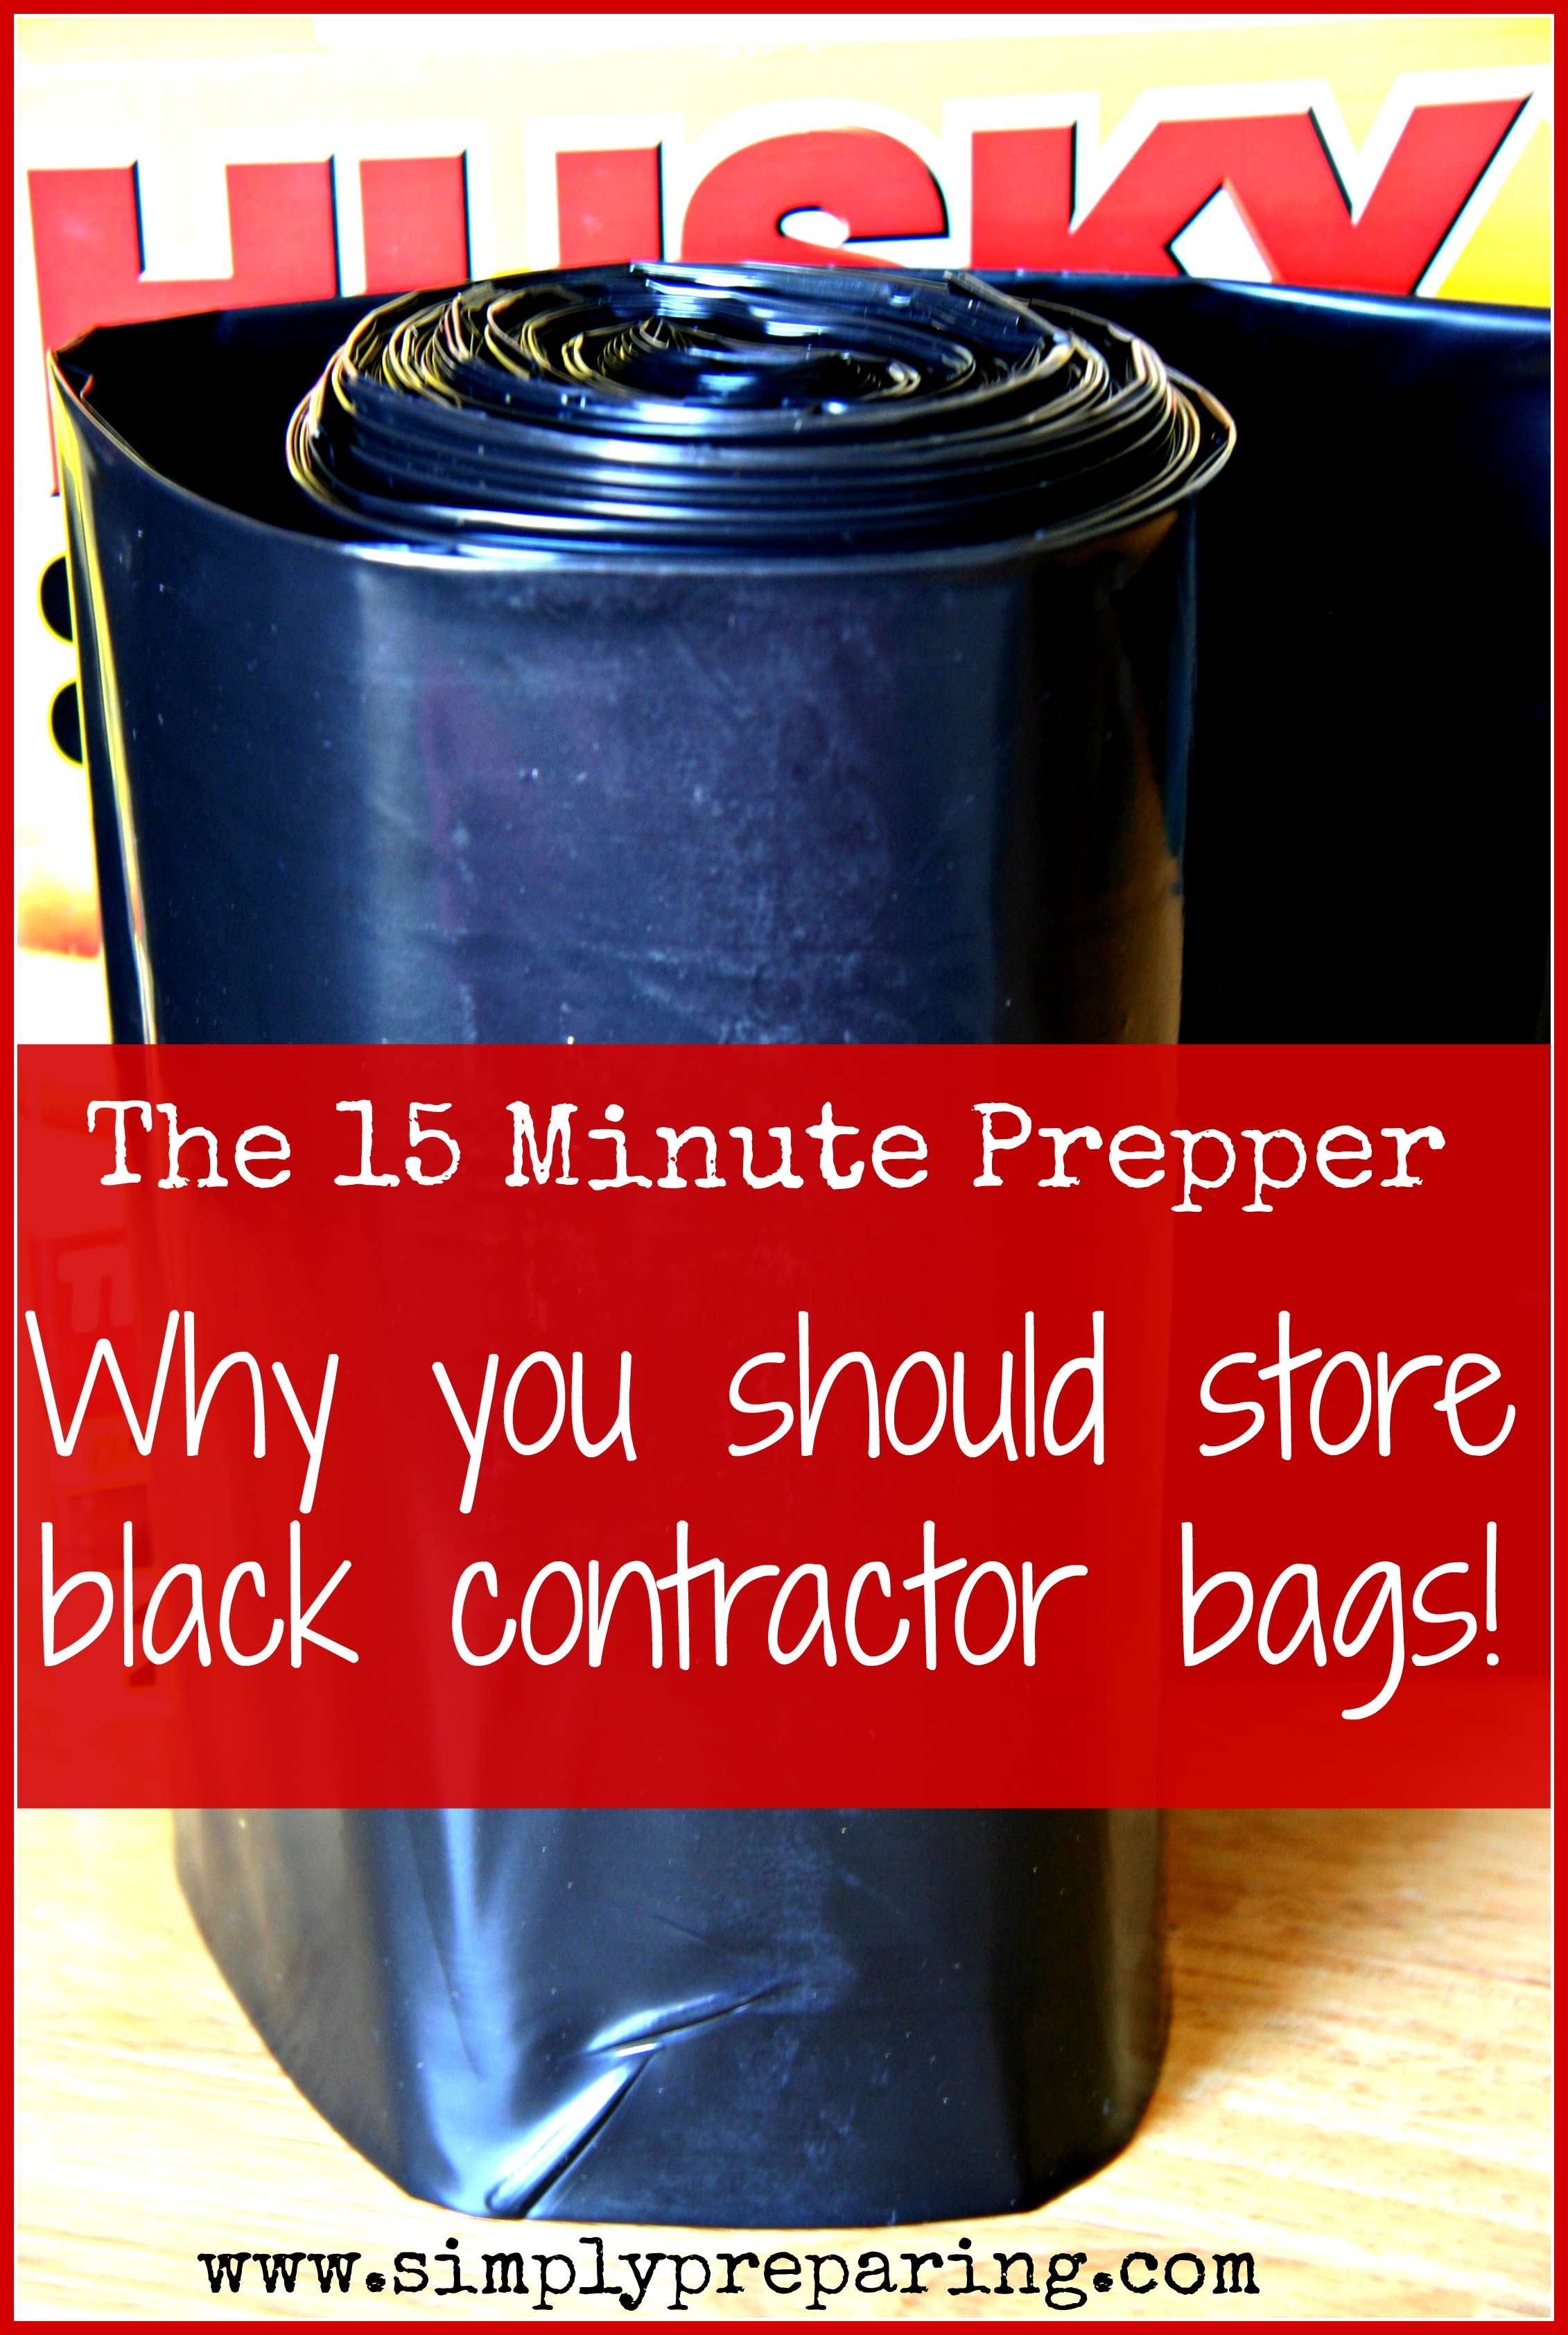 15 Minute Prepper: Black contractor bags